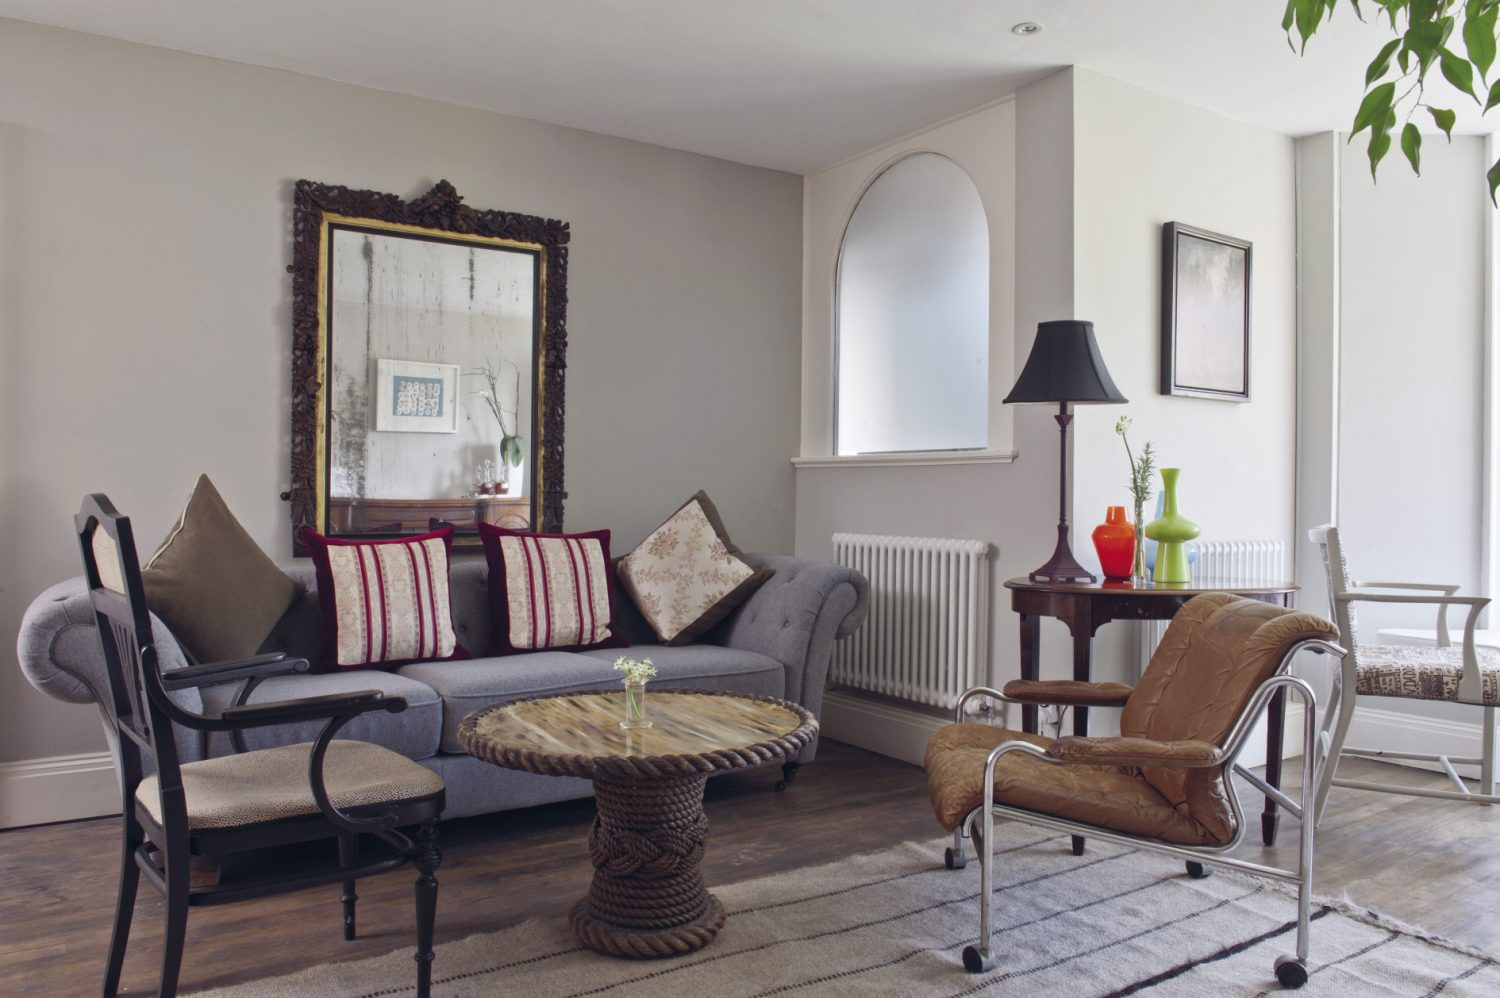 One end of the large sitting room is home to an eclectic collection of tables and chairs – some covered in really interesting fabrics from local designer Louise Body – where you can sit and gaze over the Hastings rooftops while enjoying a drink from the bar